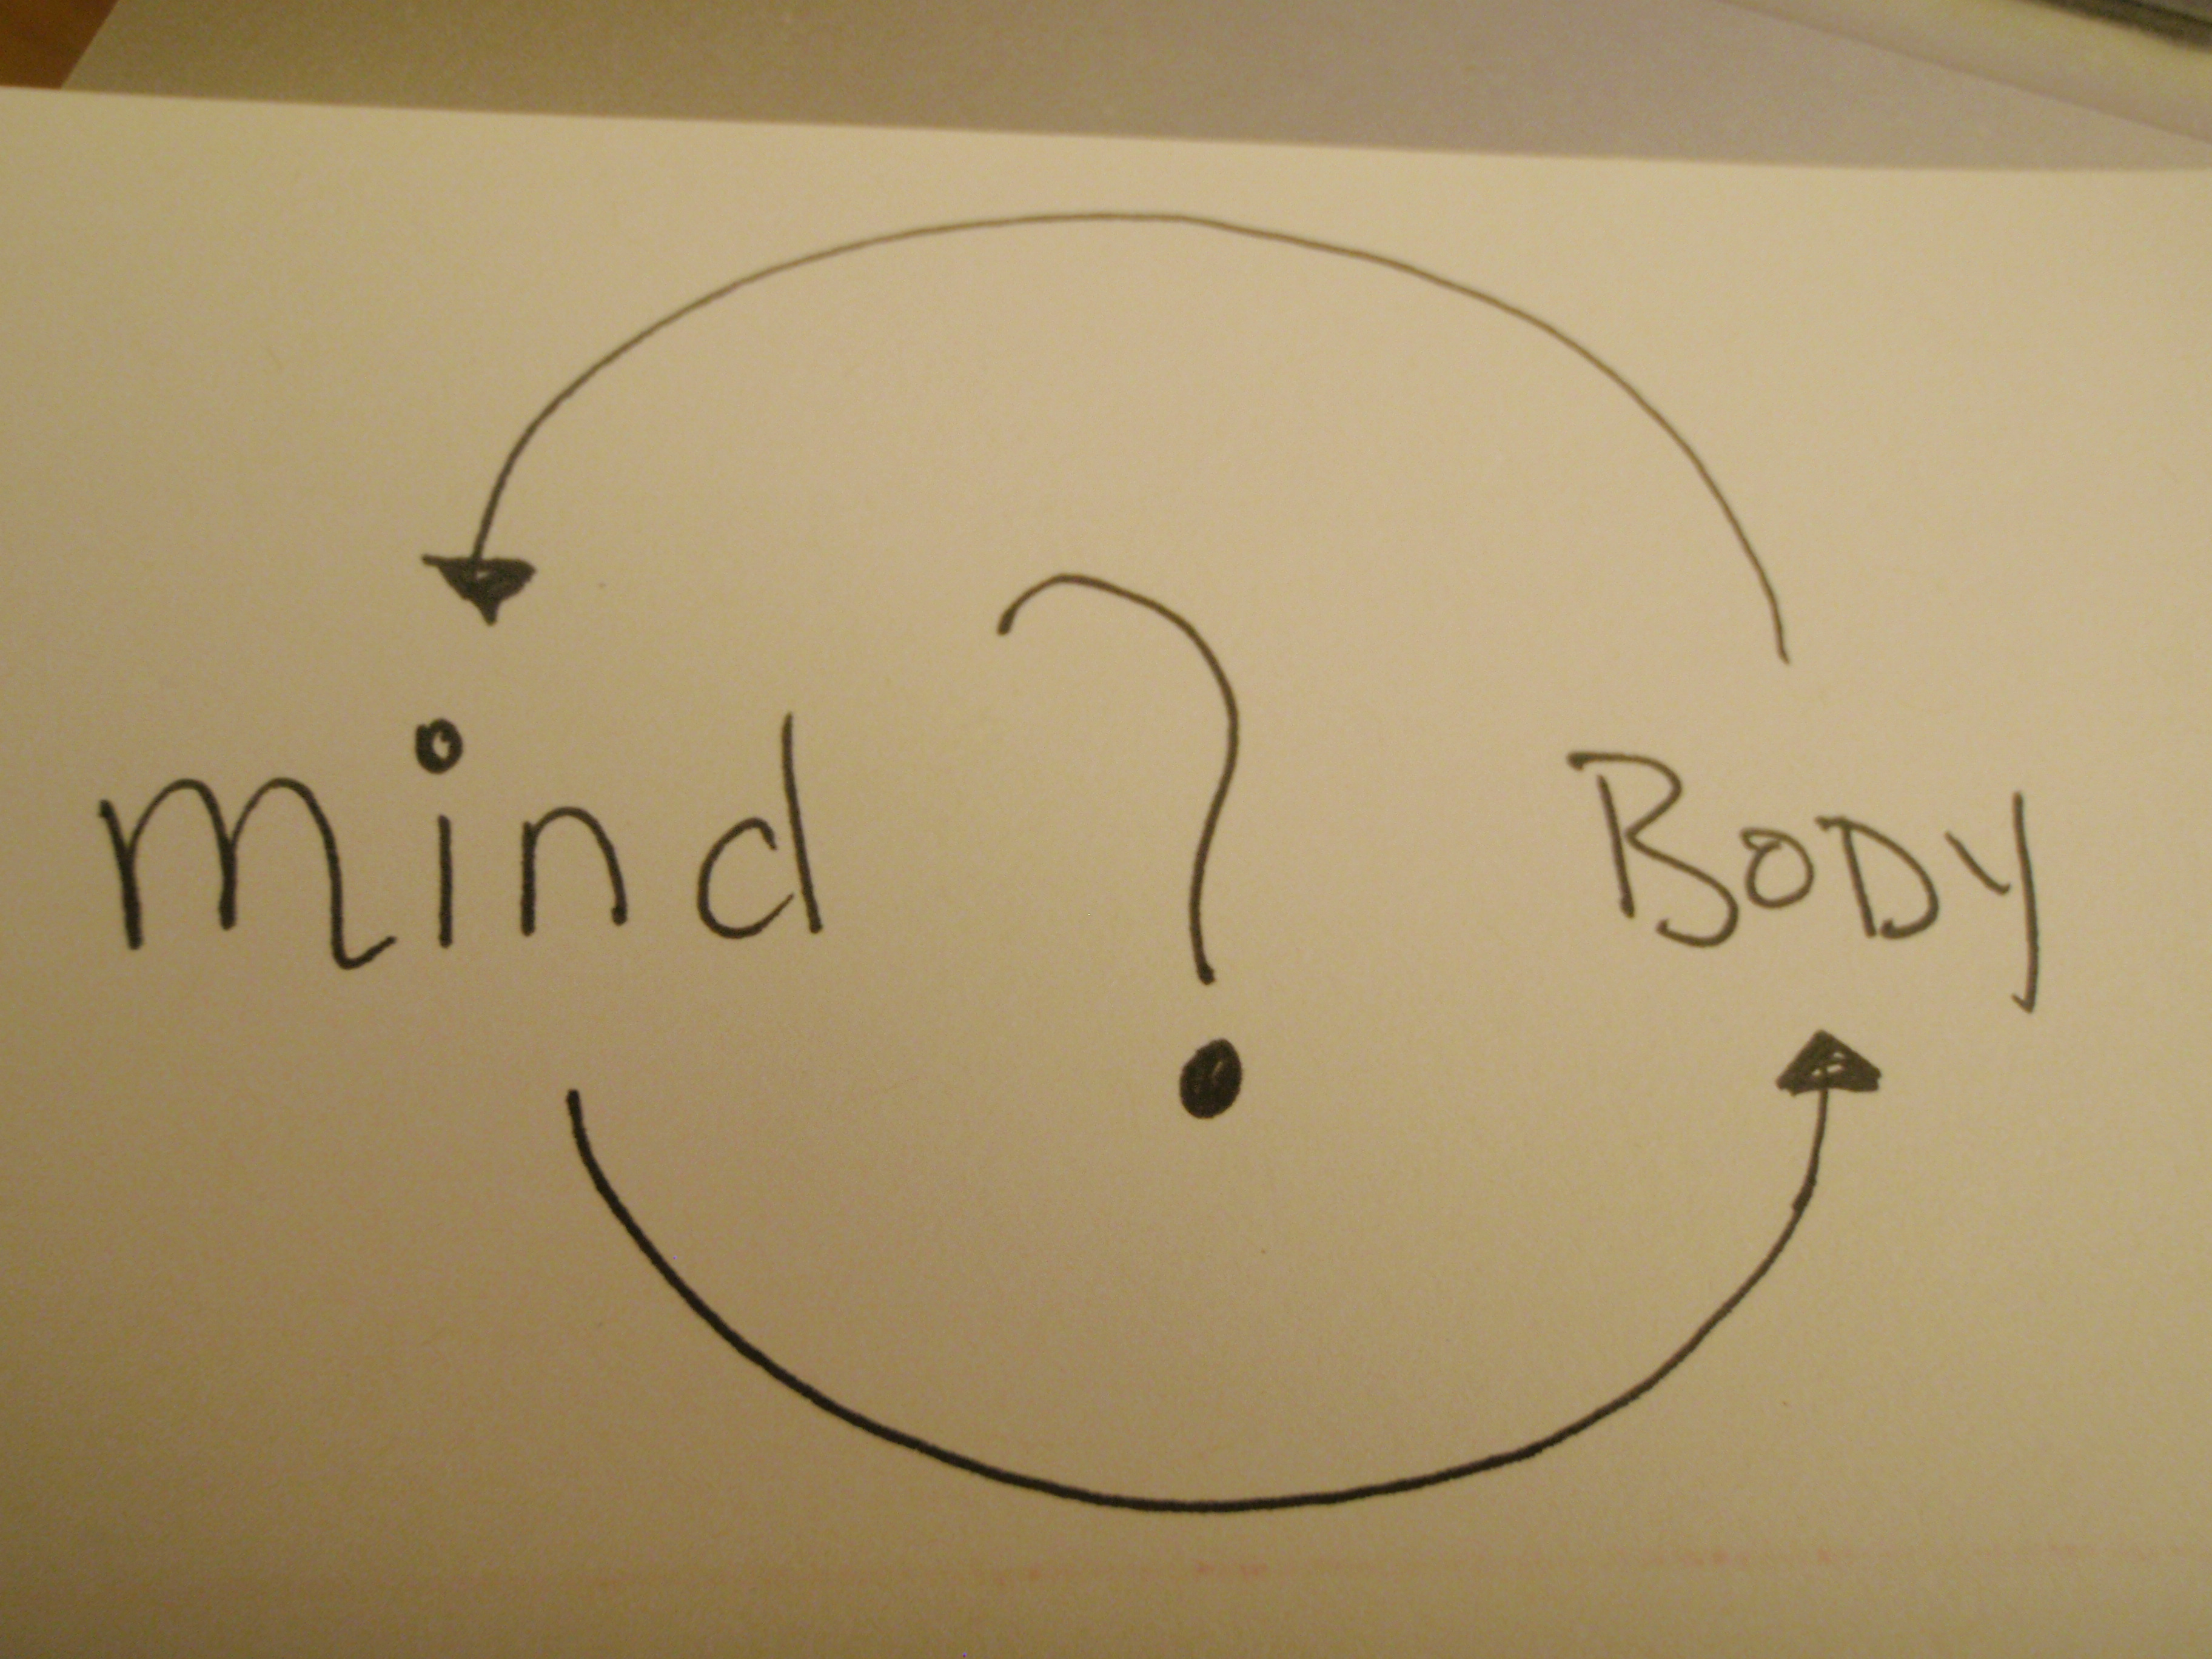 an introduction to mind body dualism I have started studying philosophy of mind and i am currently reading an introduction to the field the first topic that is presented in the book is dualism of the cartesian brand, and the case for.